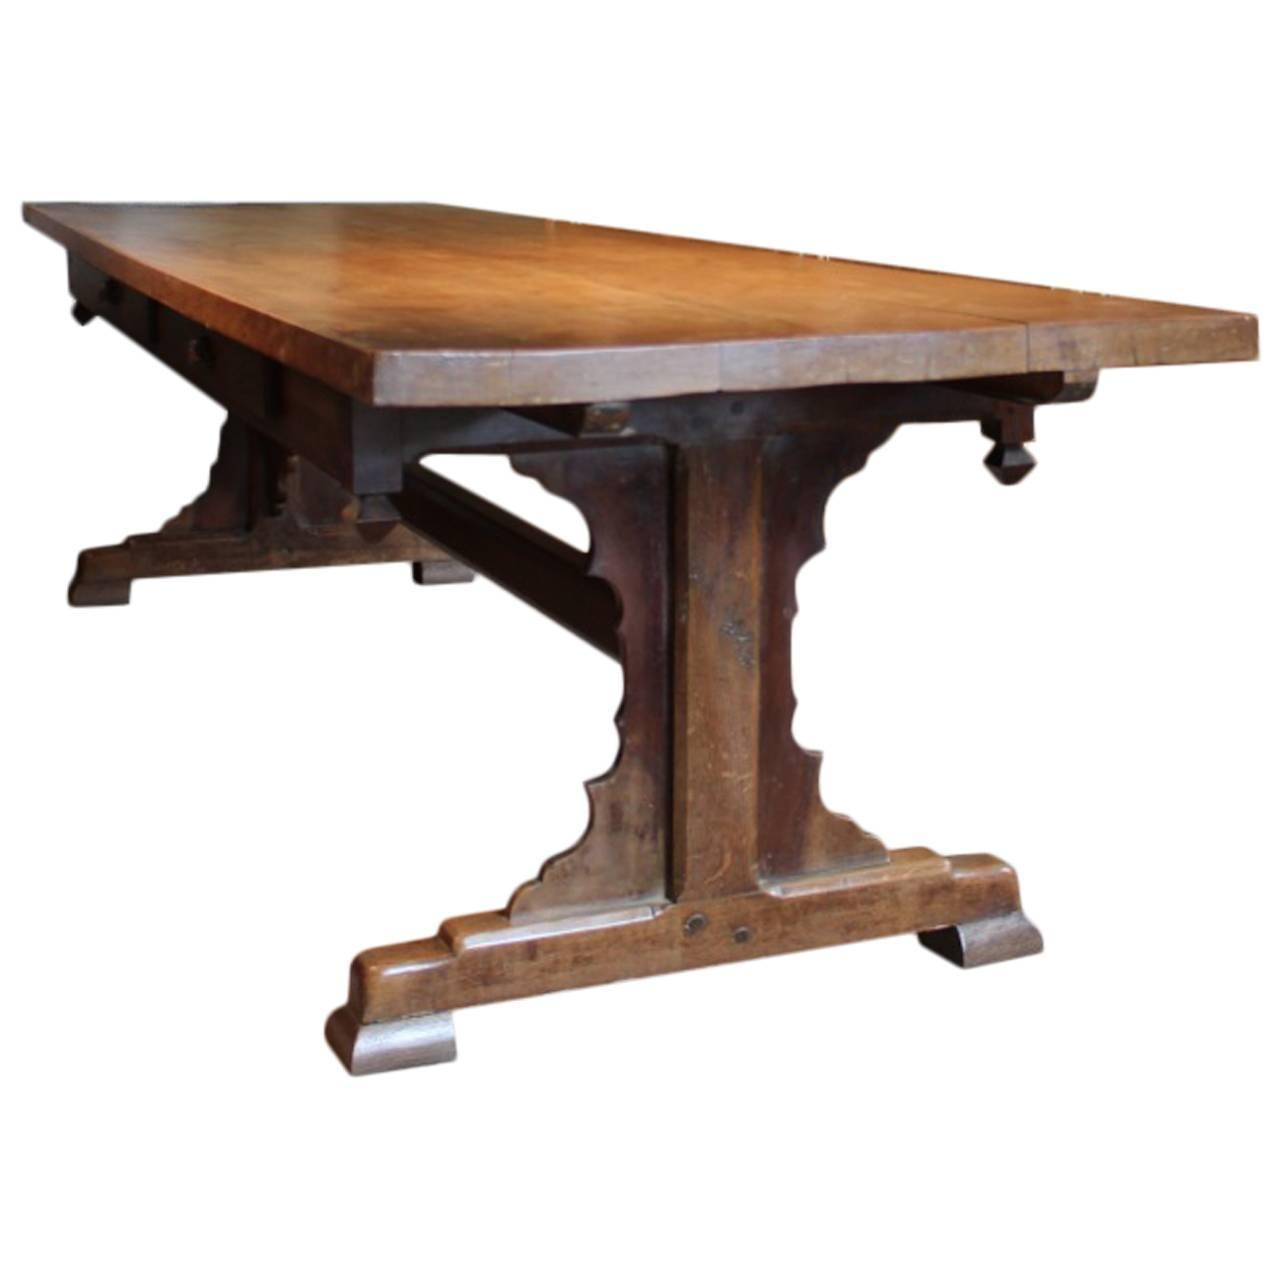 Superb 19th Century French Farmhouse Dining Table For Sale at 1stdibs